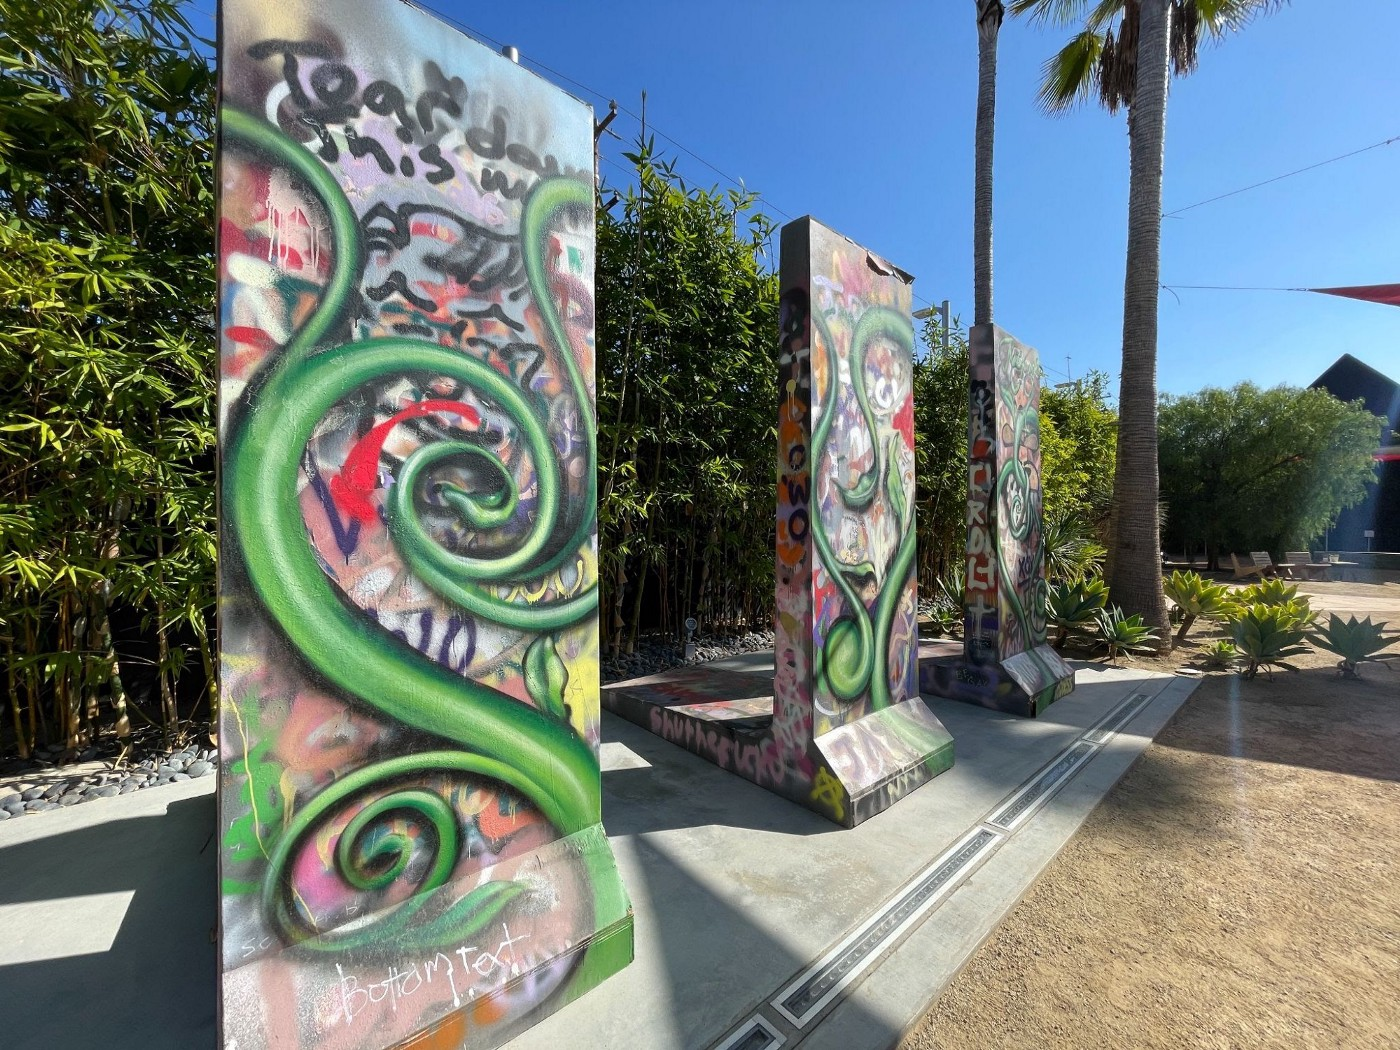 A graffiti exhibit by @muckrock at the Wende Museum.